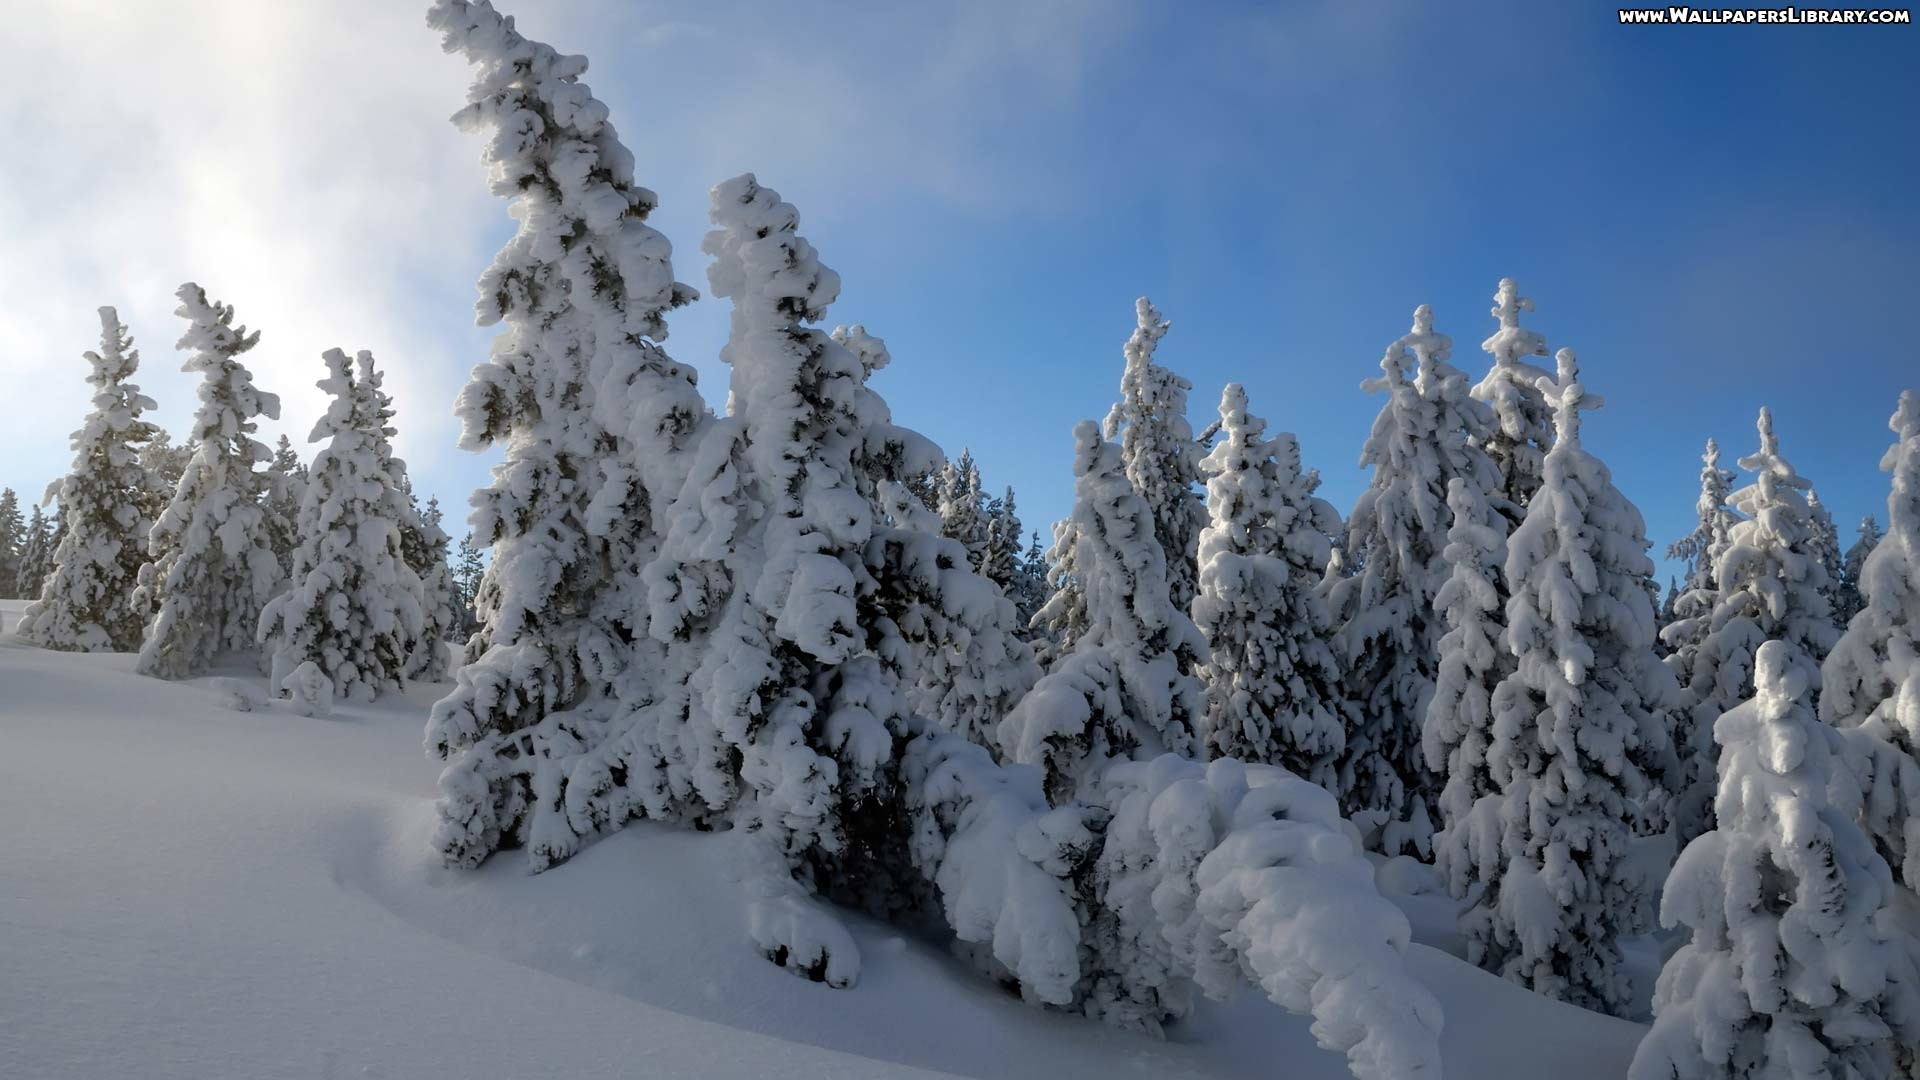 Snow Forest Wallpaper 8498 Hd Wallpapers in Nature – Imagesci.com